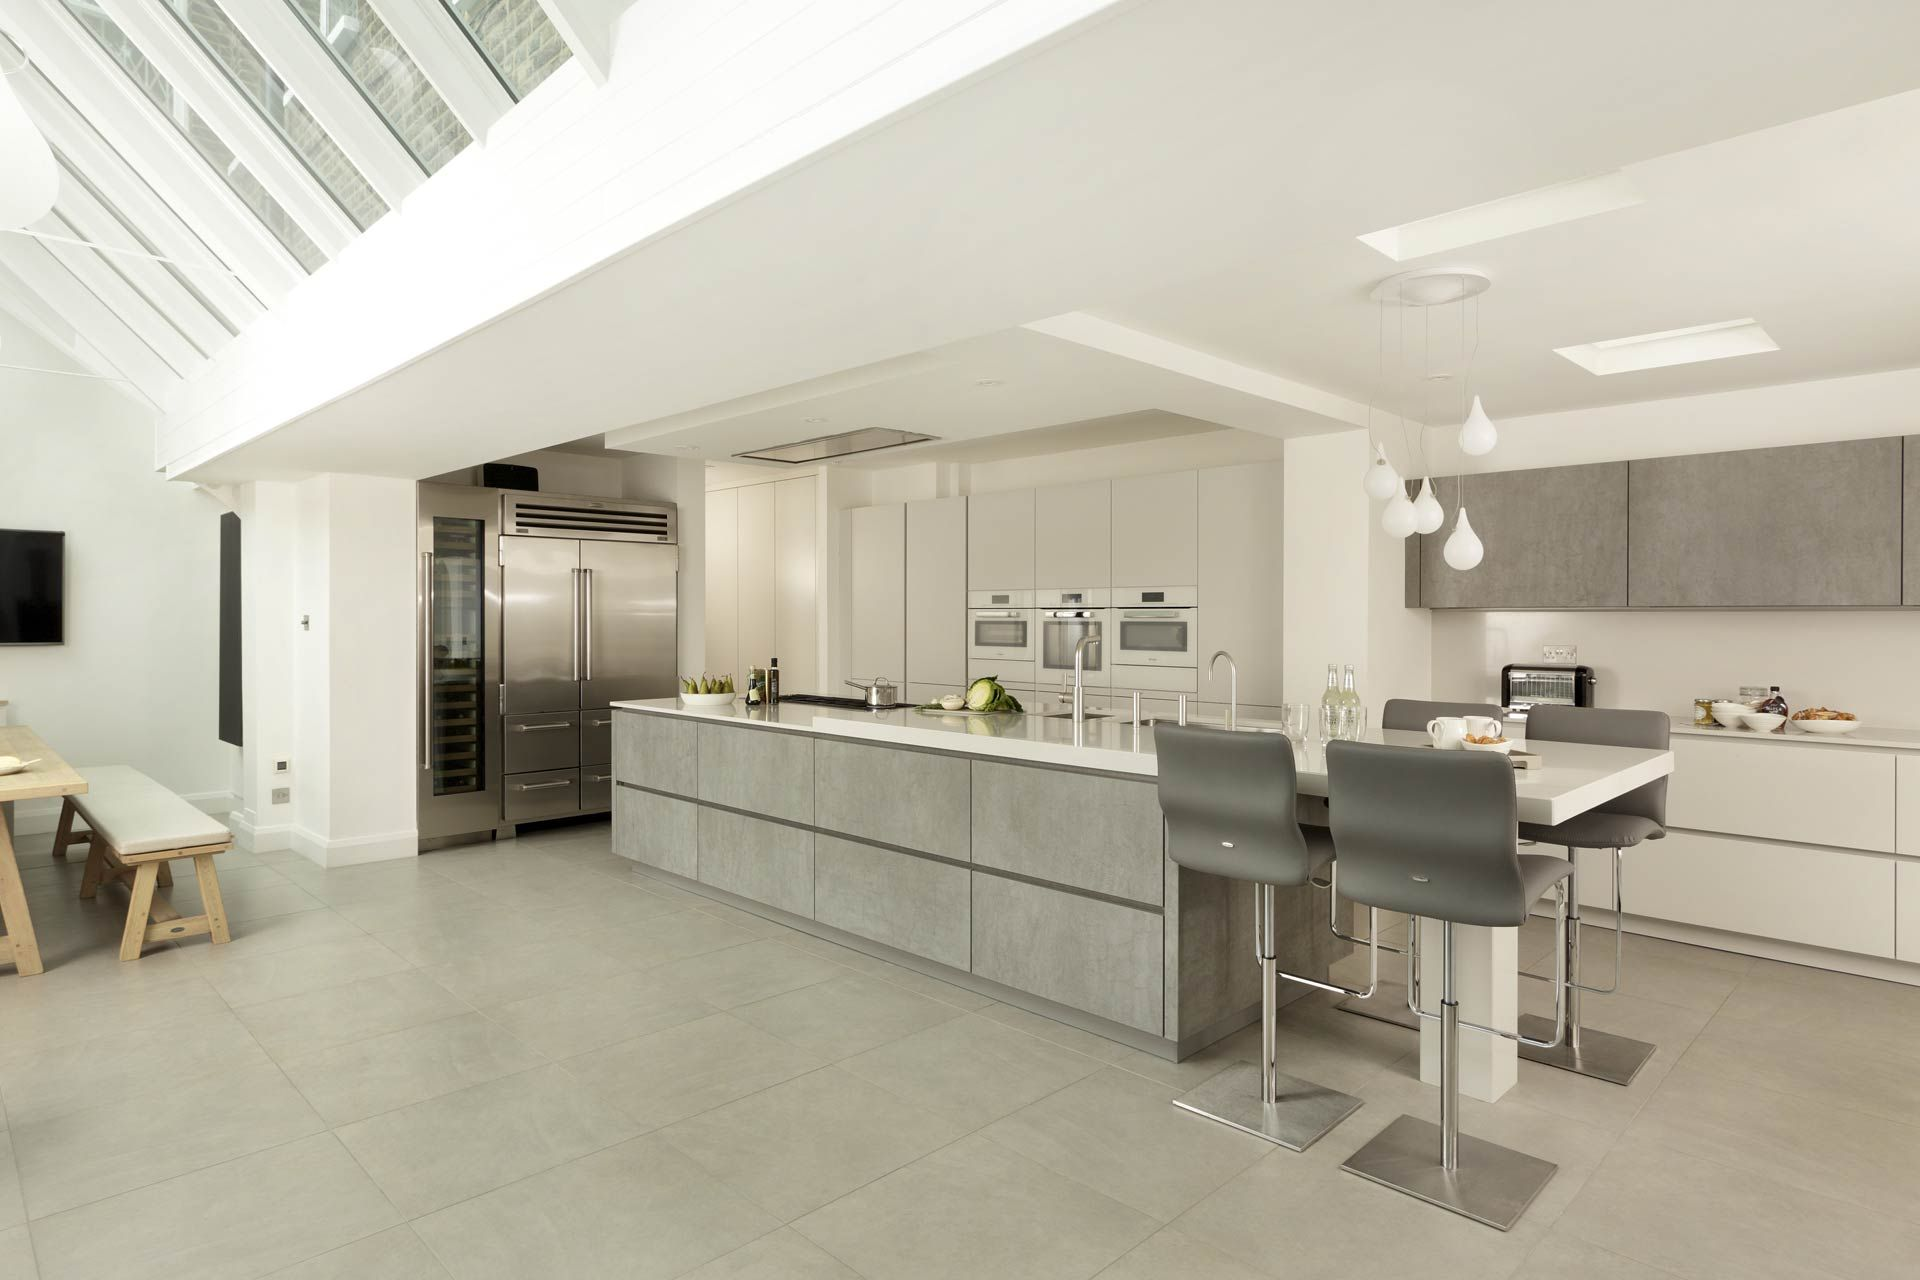 Stewart alno kitchen ankerdine pinterest kitchens beautiful